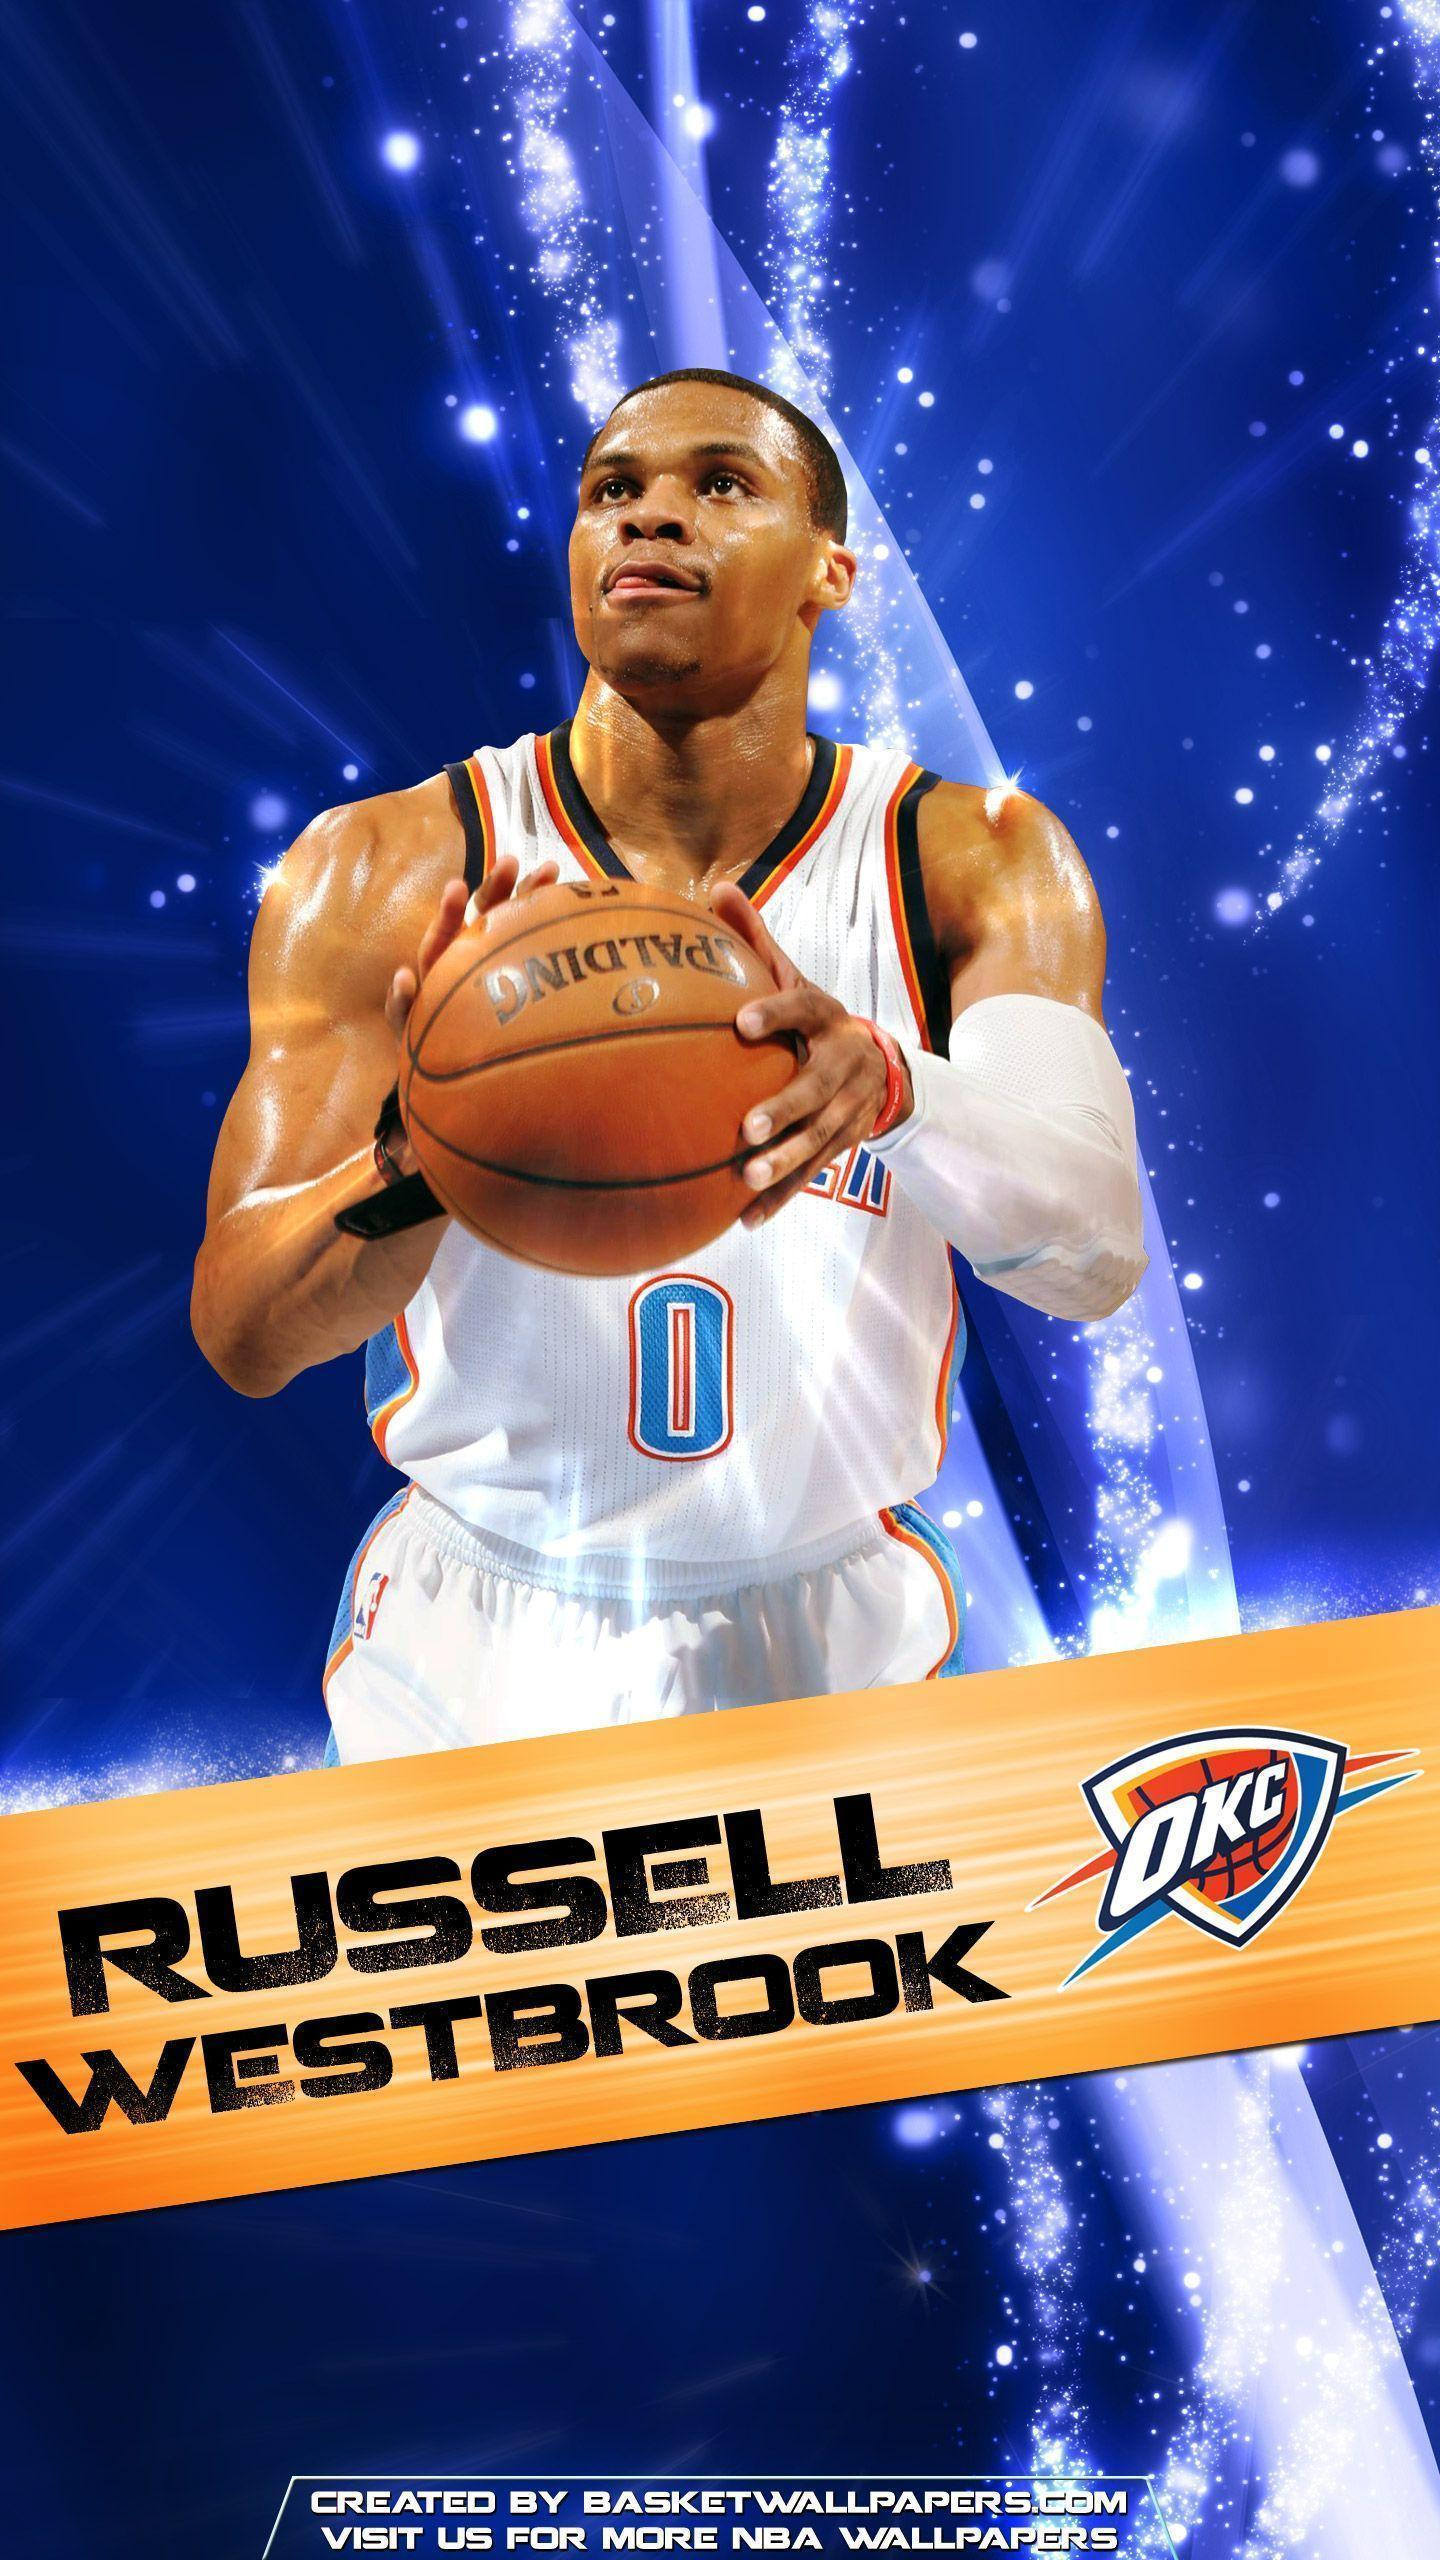 Westbrook wallpaper iphone